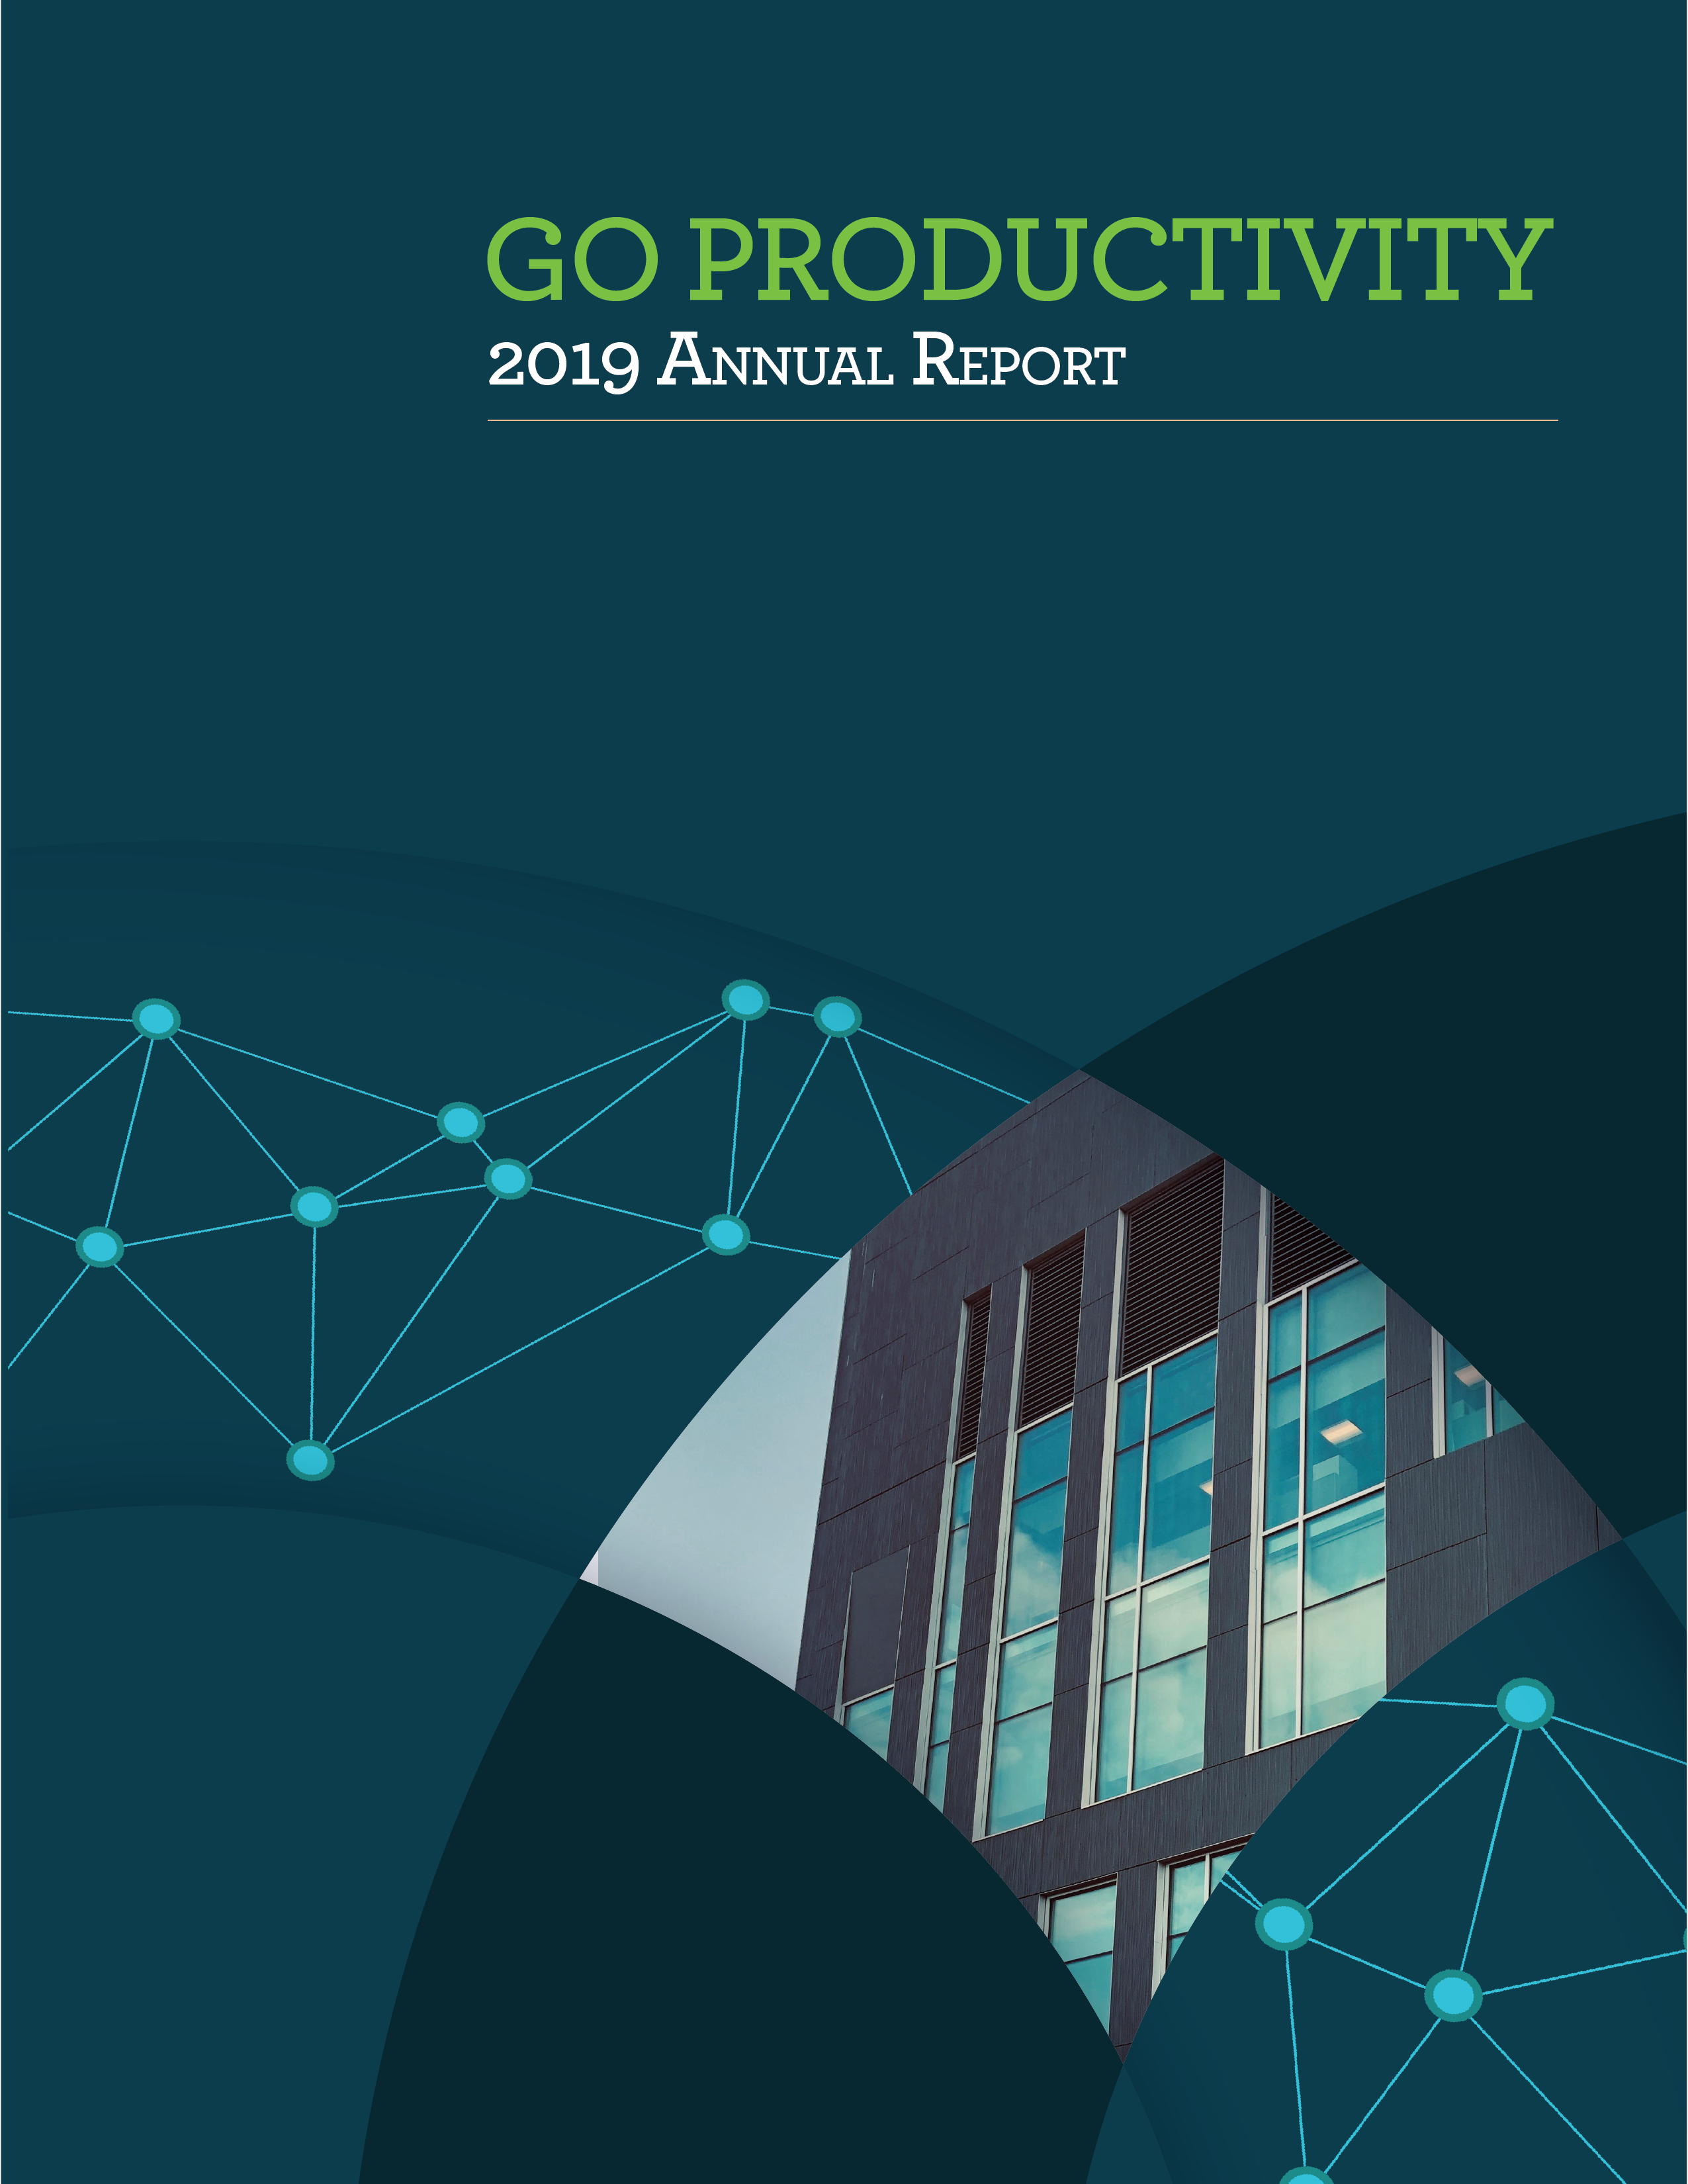 GO Productivity's 2019 Annual Report